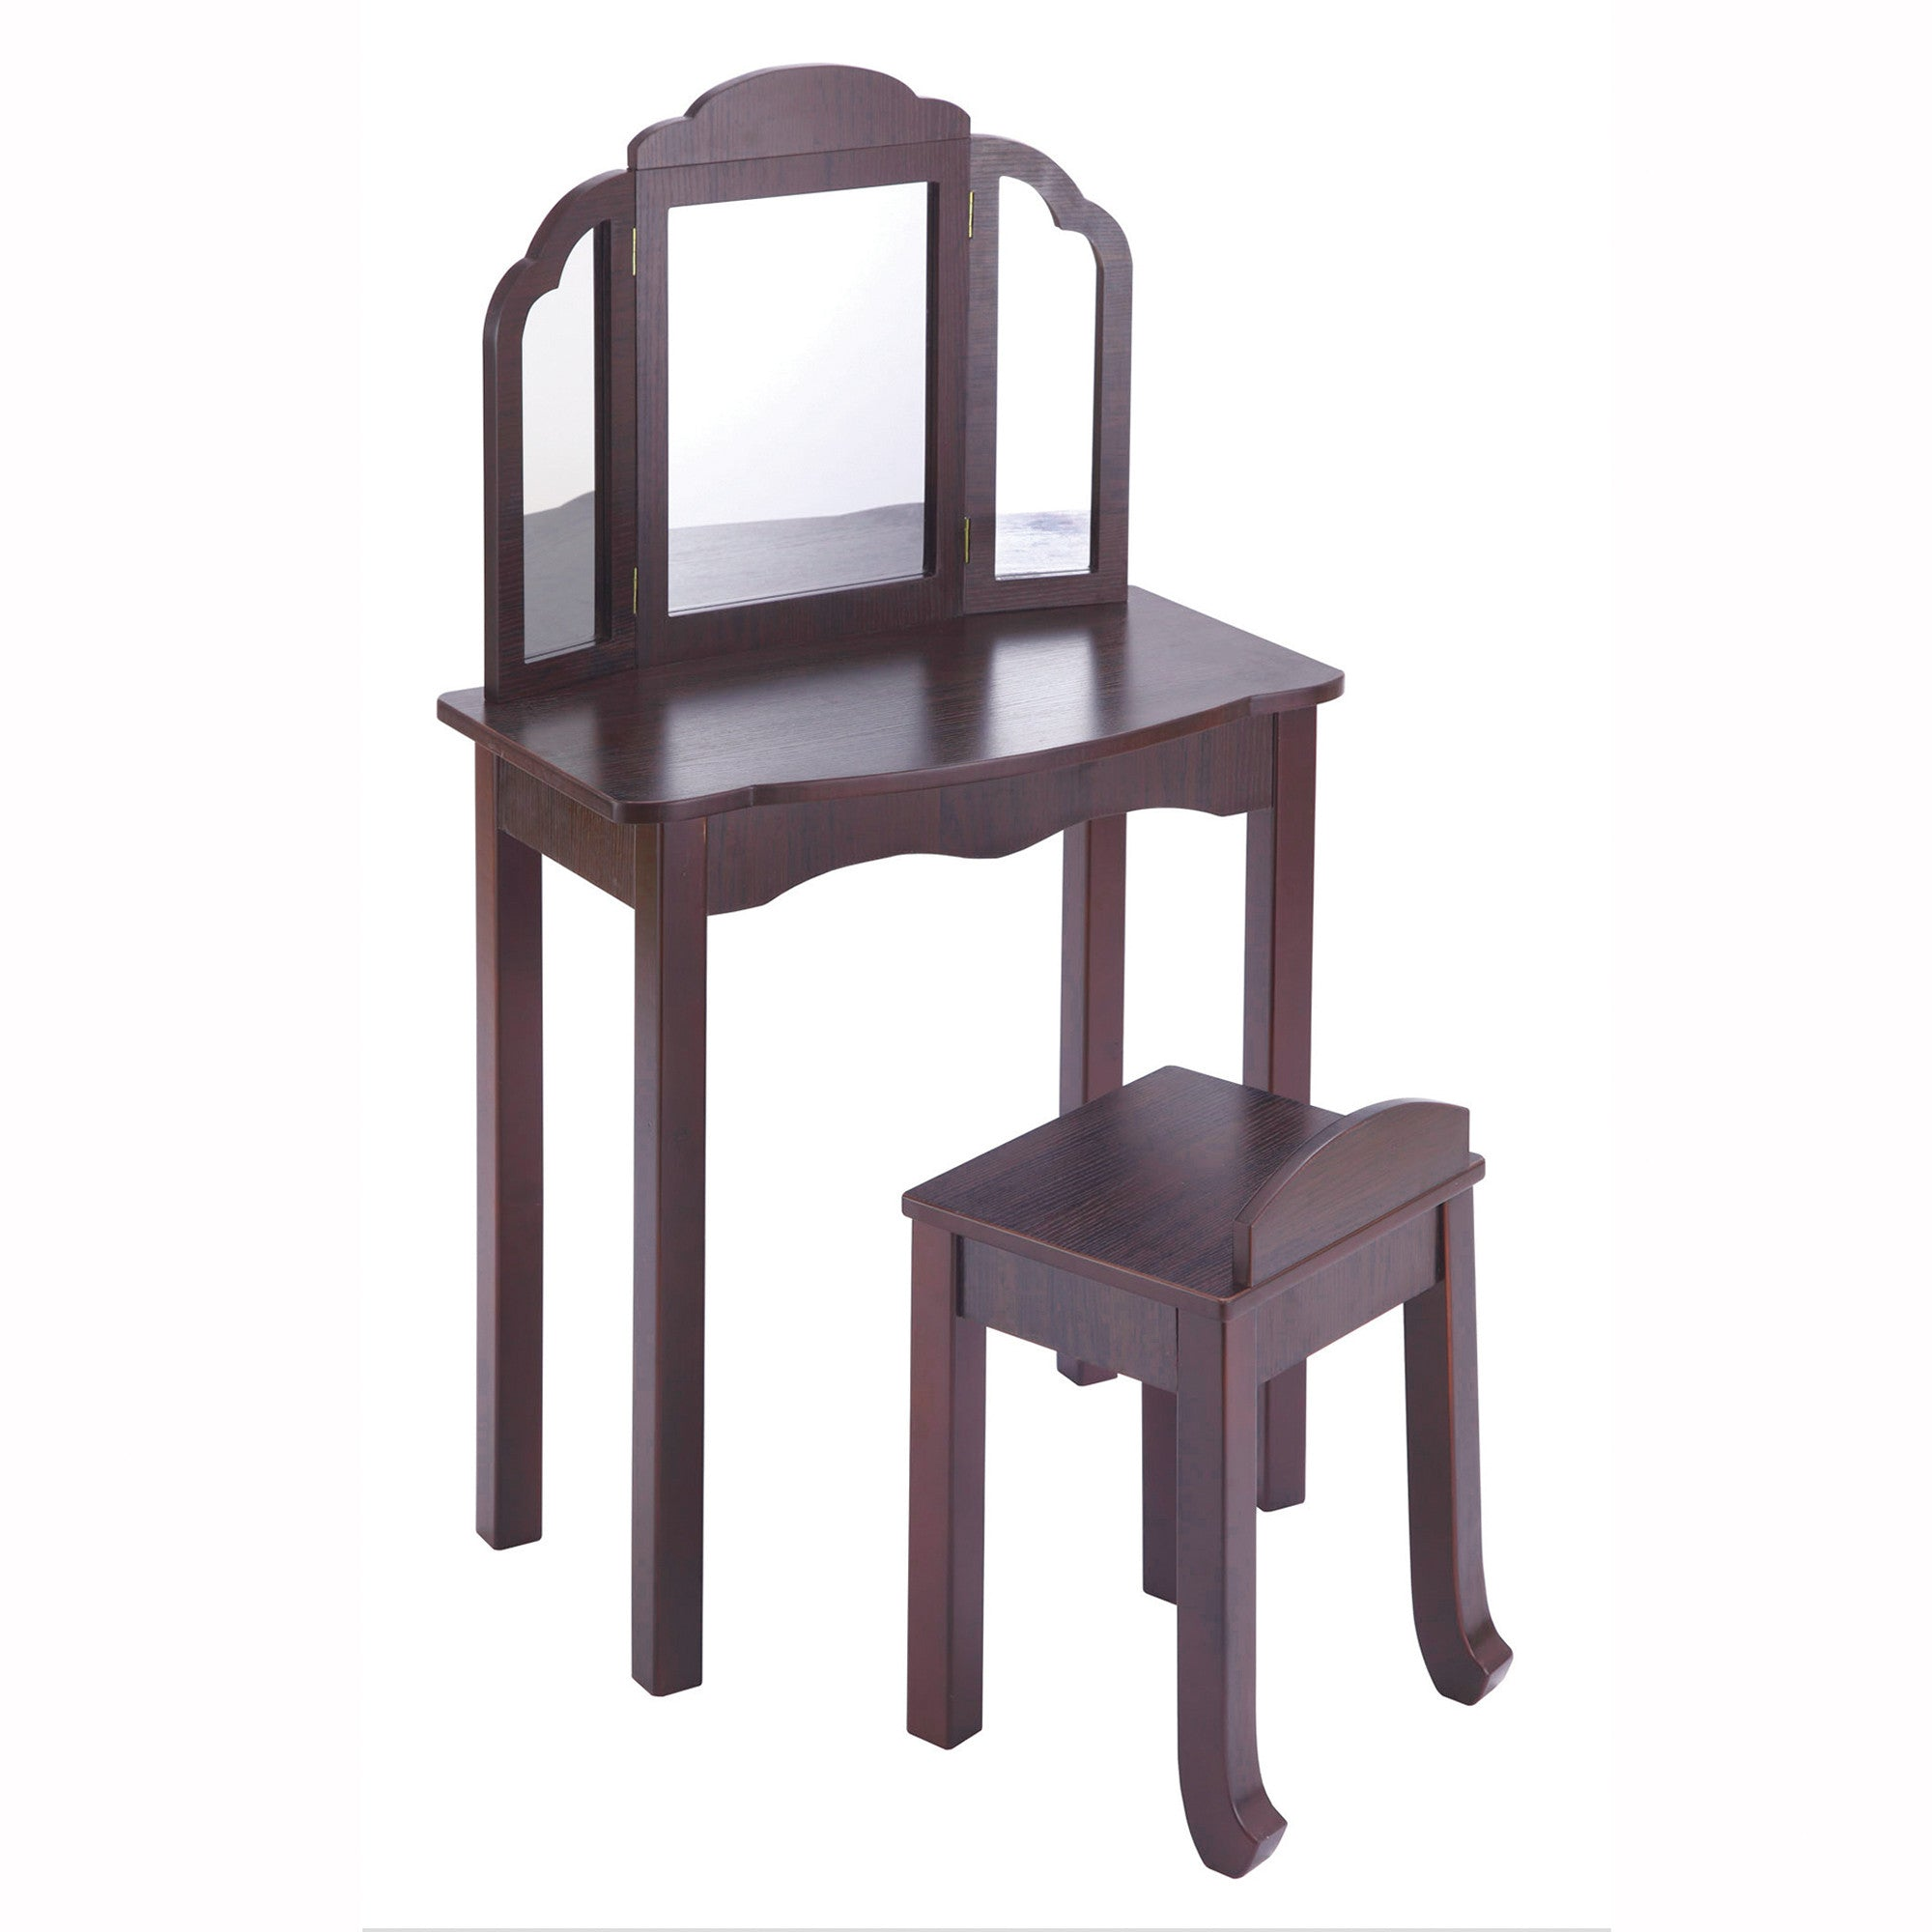 Guidecraft Expressions Vanity & Stool: Espresso G87304